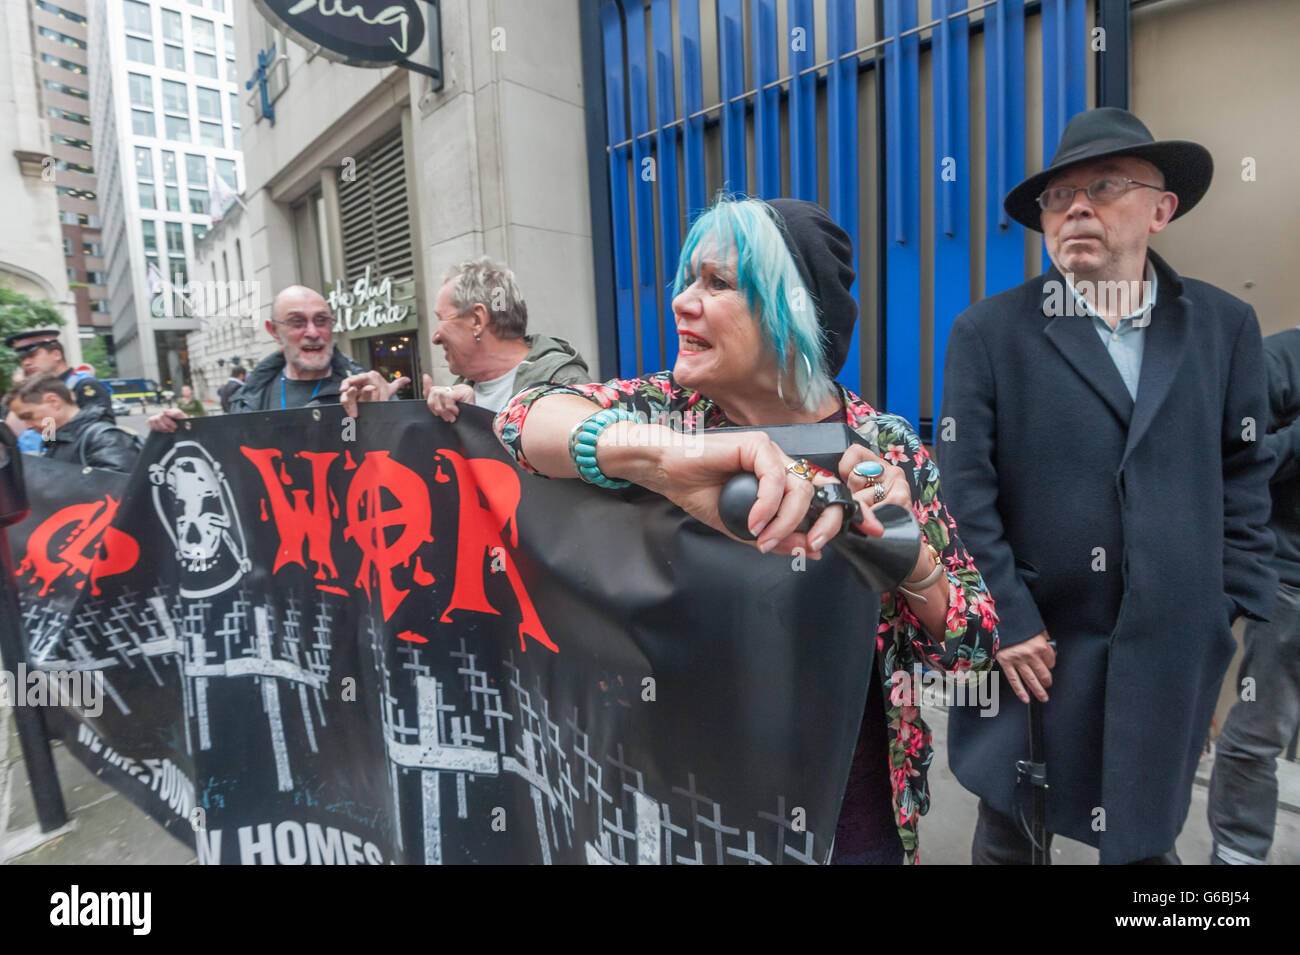 London, UK. June 29th, 2016. Class War suppot the striking cleaners belonging to the United Voices of the World Stock Photo